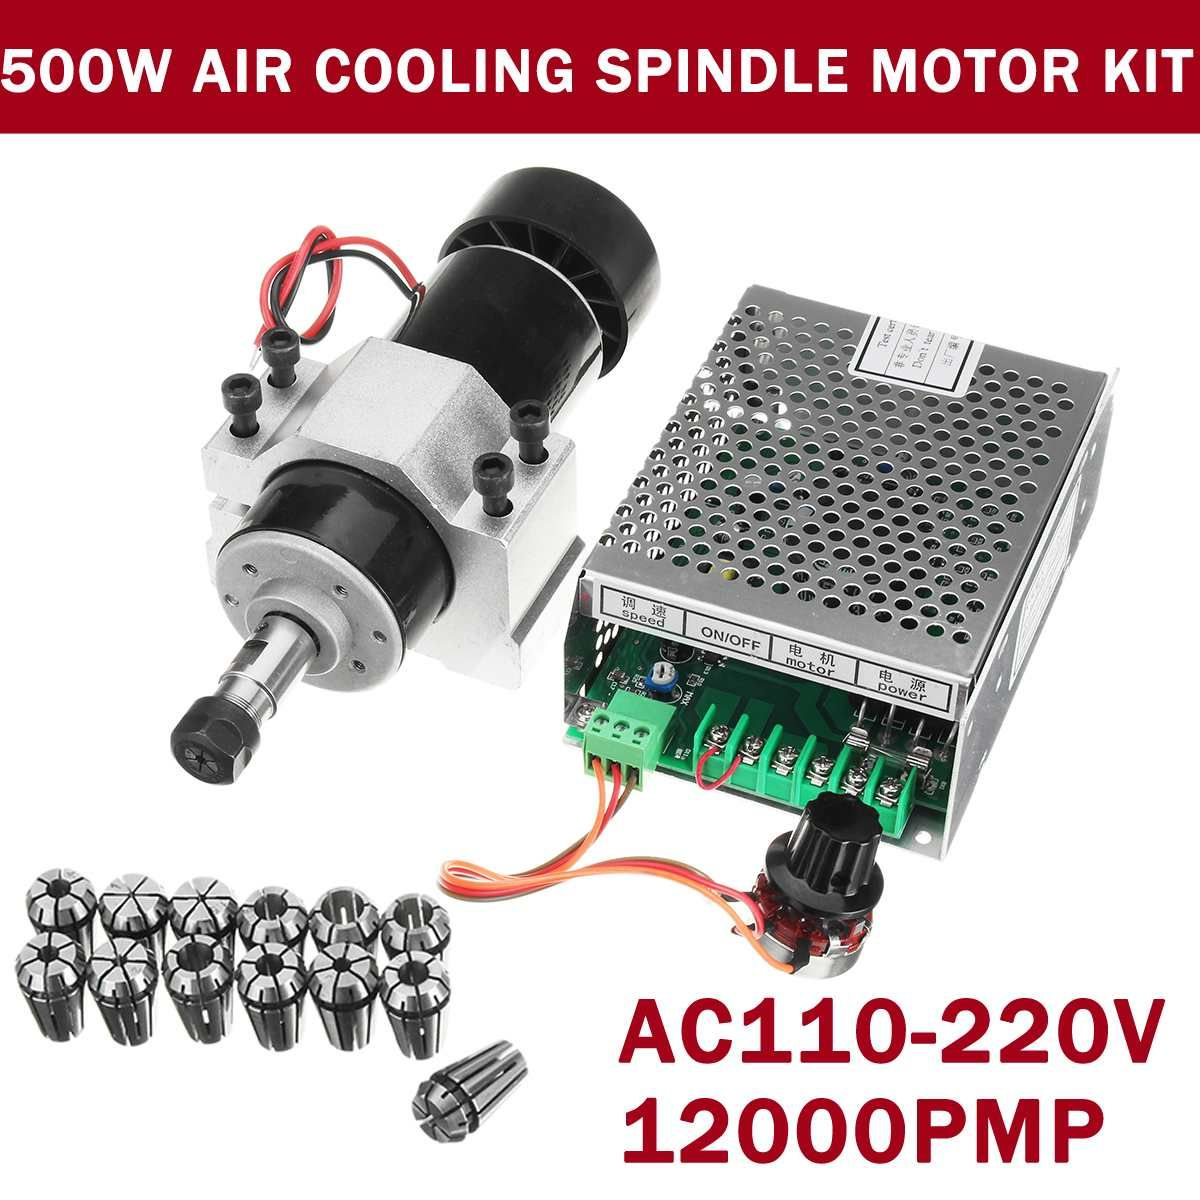 500W CNC Air Cooling Spindle Motor Engraving Machine Router+52mm Clamps+Speed Governor ER11 Collet Chuck For Engraving Machine